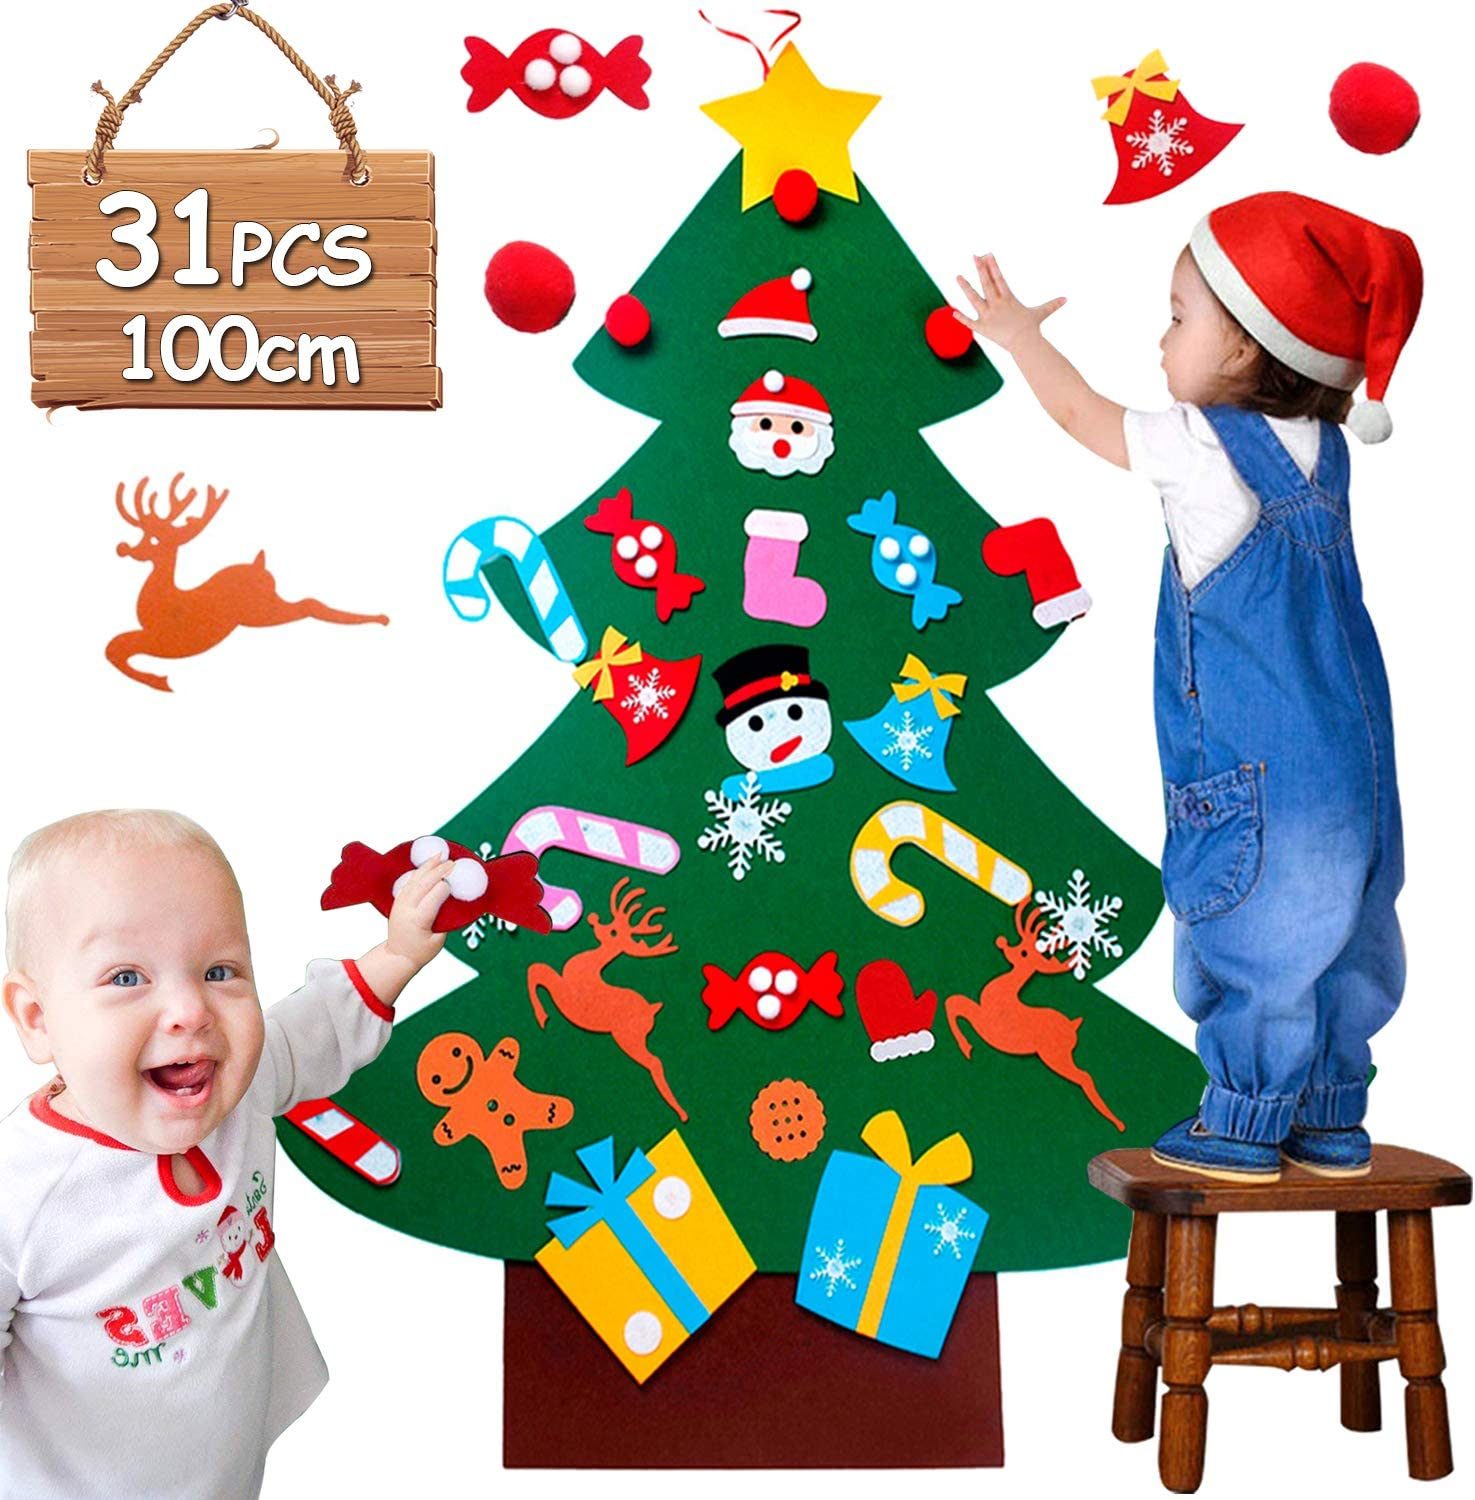 UUCOLOR 3ft Christmas Tree with 31pcs Felt Christmas Tree Kit 52% OFF £2.40 @ Amazon